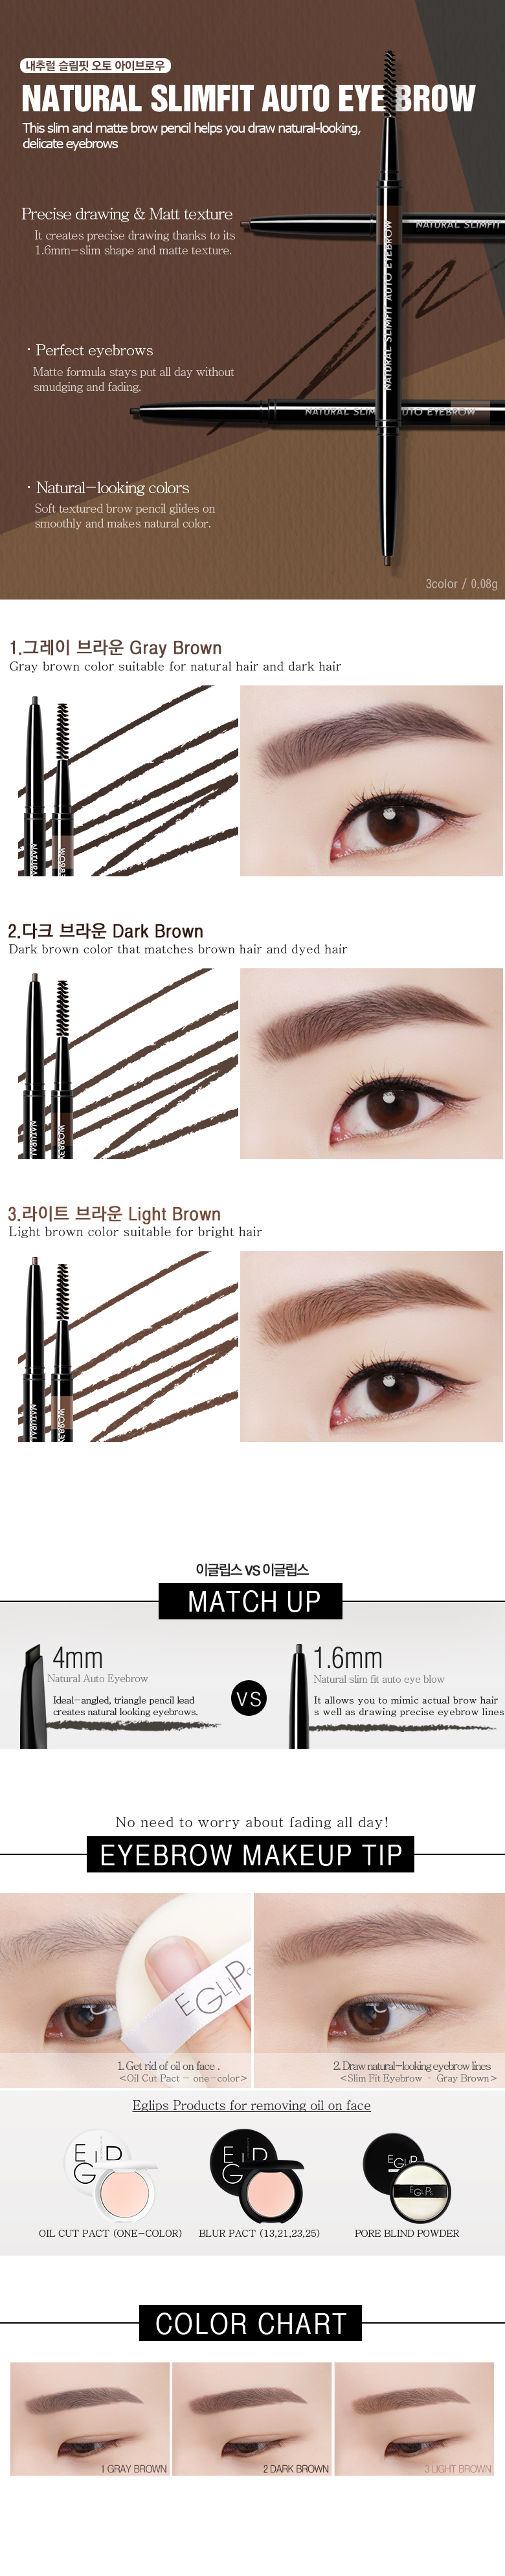 Natural Slimfit Auto Eyebrow